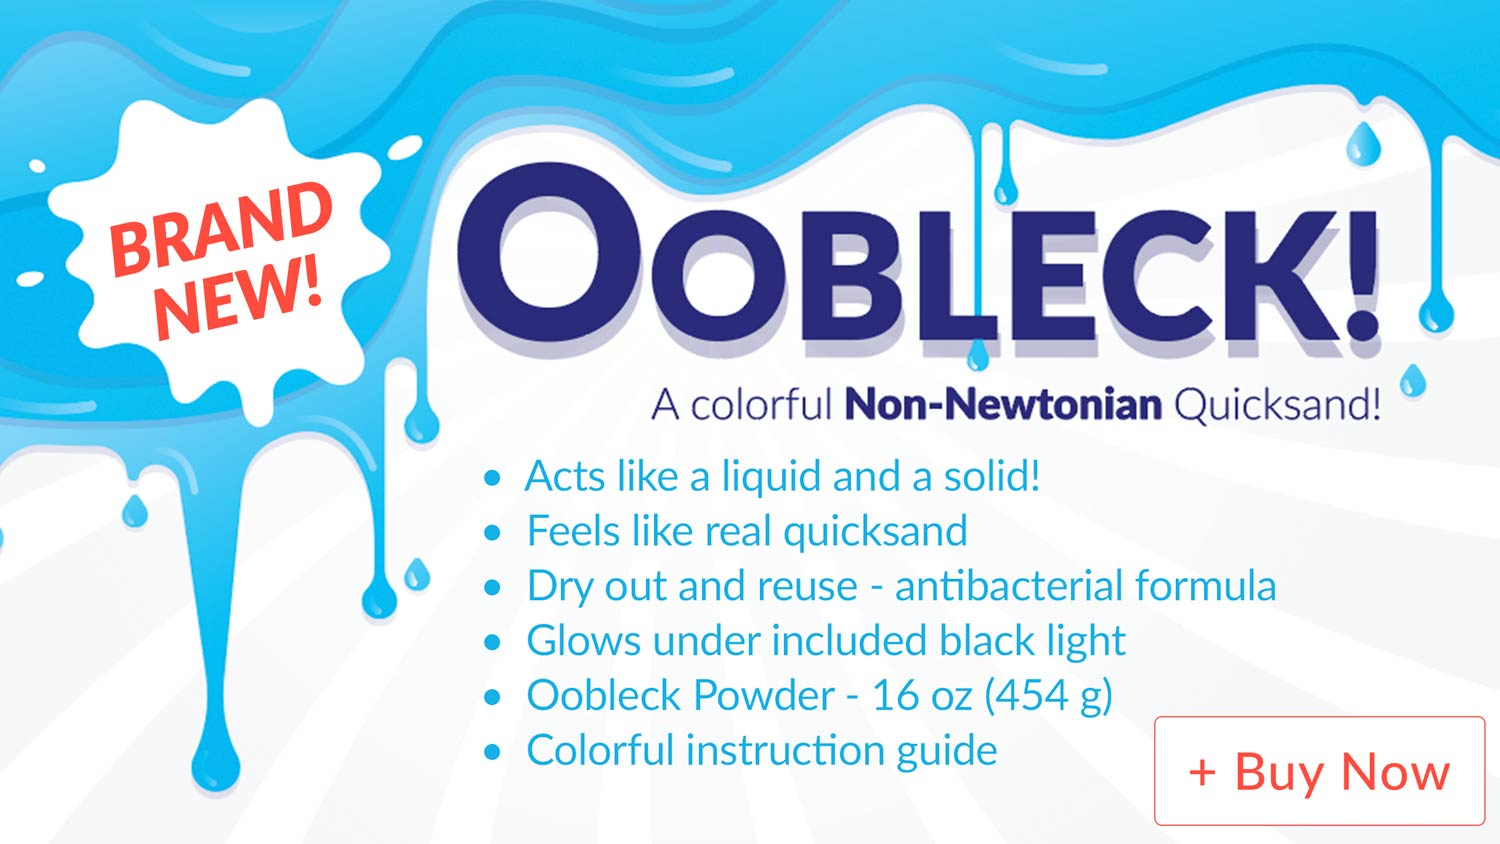 Brand New Oobleck